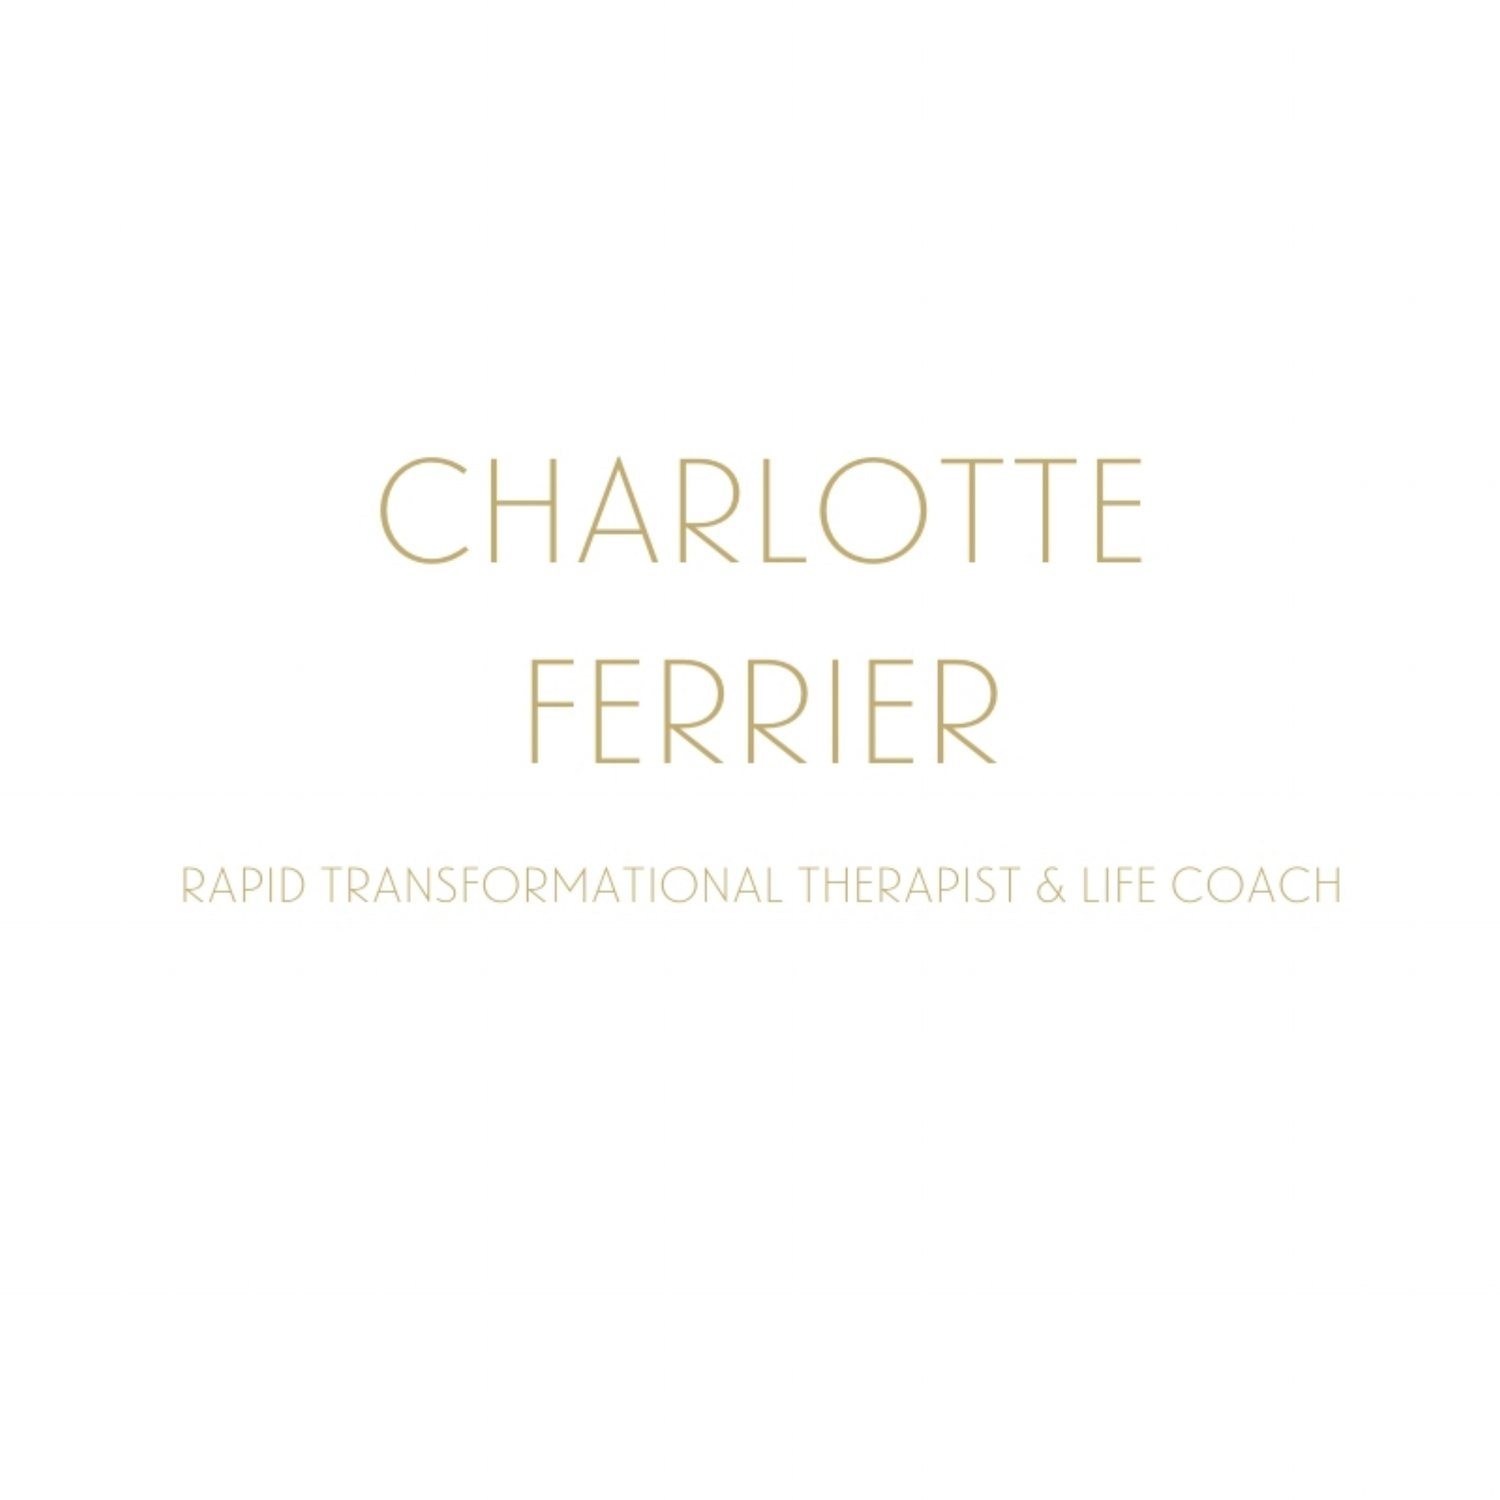 Charlotte Ferrier - Rapid Transformational Therapist & Life Coach